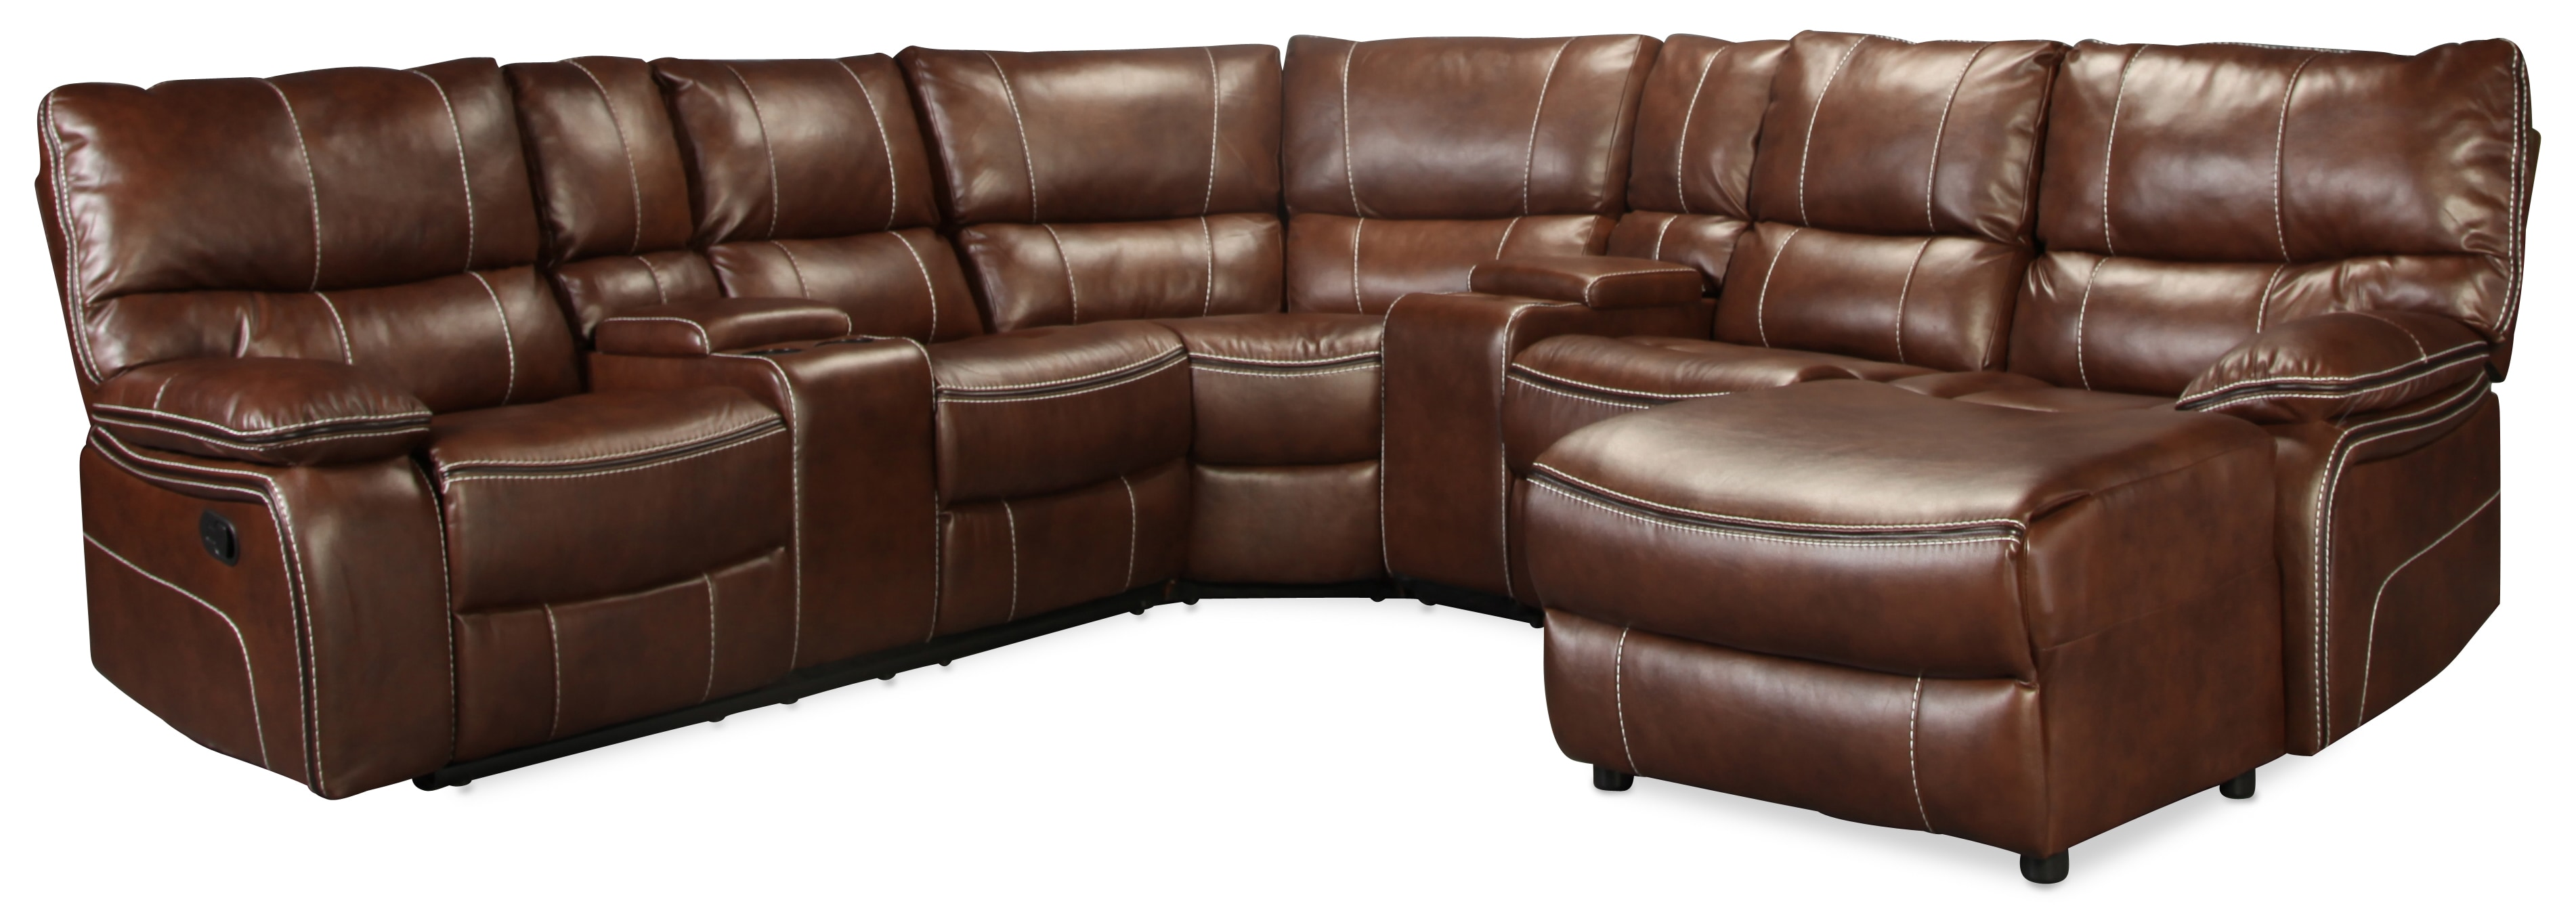 Zayden 5 Piece Reclining Sectional - Whiskey